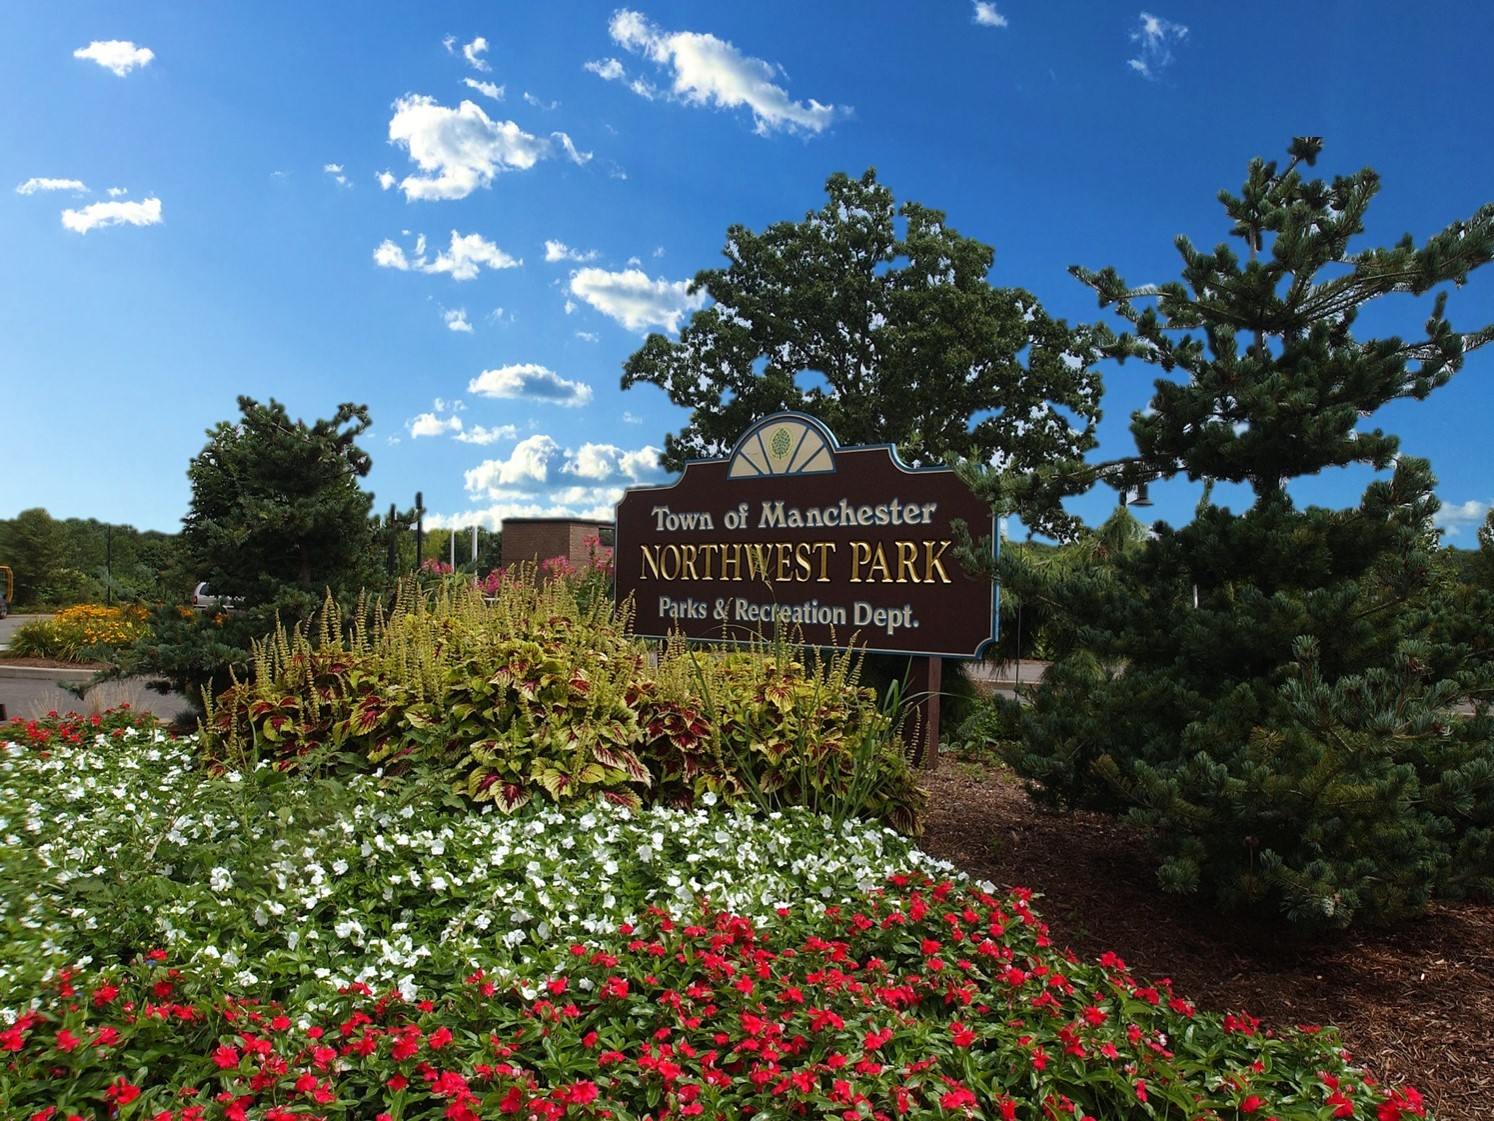 Northwest Park